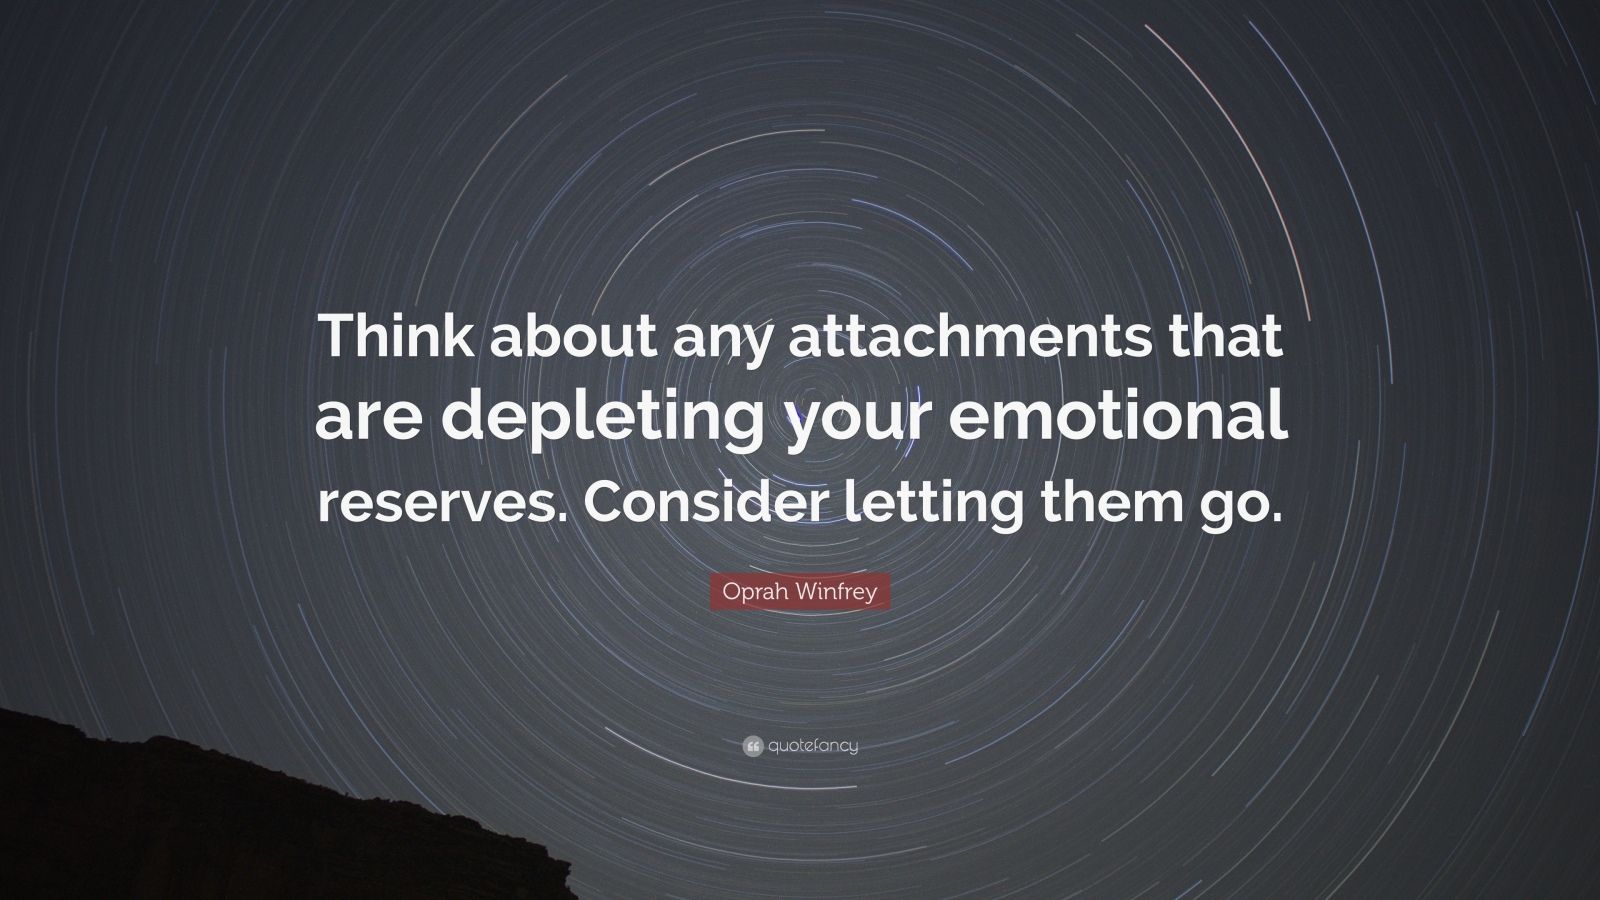 """Oprah Winfrey Quote: """"Think about any attachments that are depleting your emotional reserves. Consider letting them go."""""""